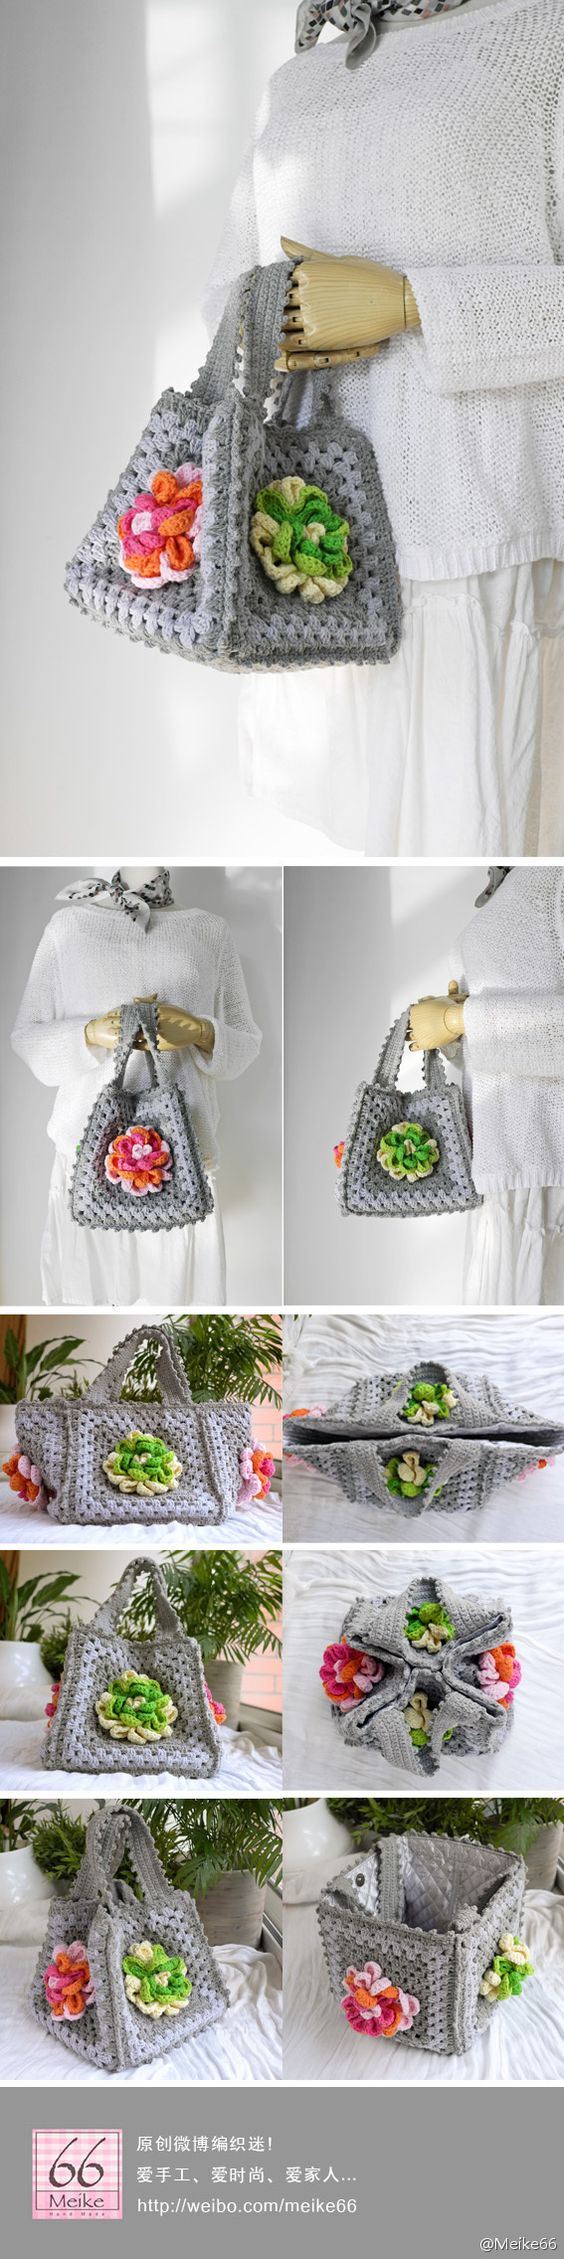 Cute little purse, just 5 crocheted squares and some handles: Inspiration!: